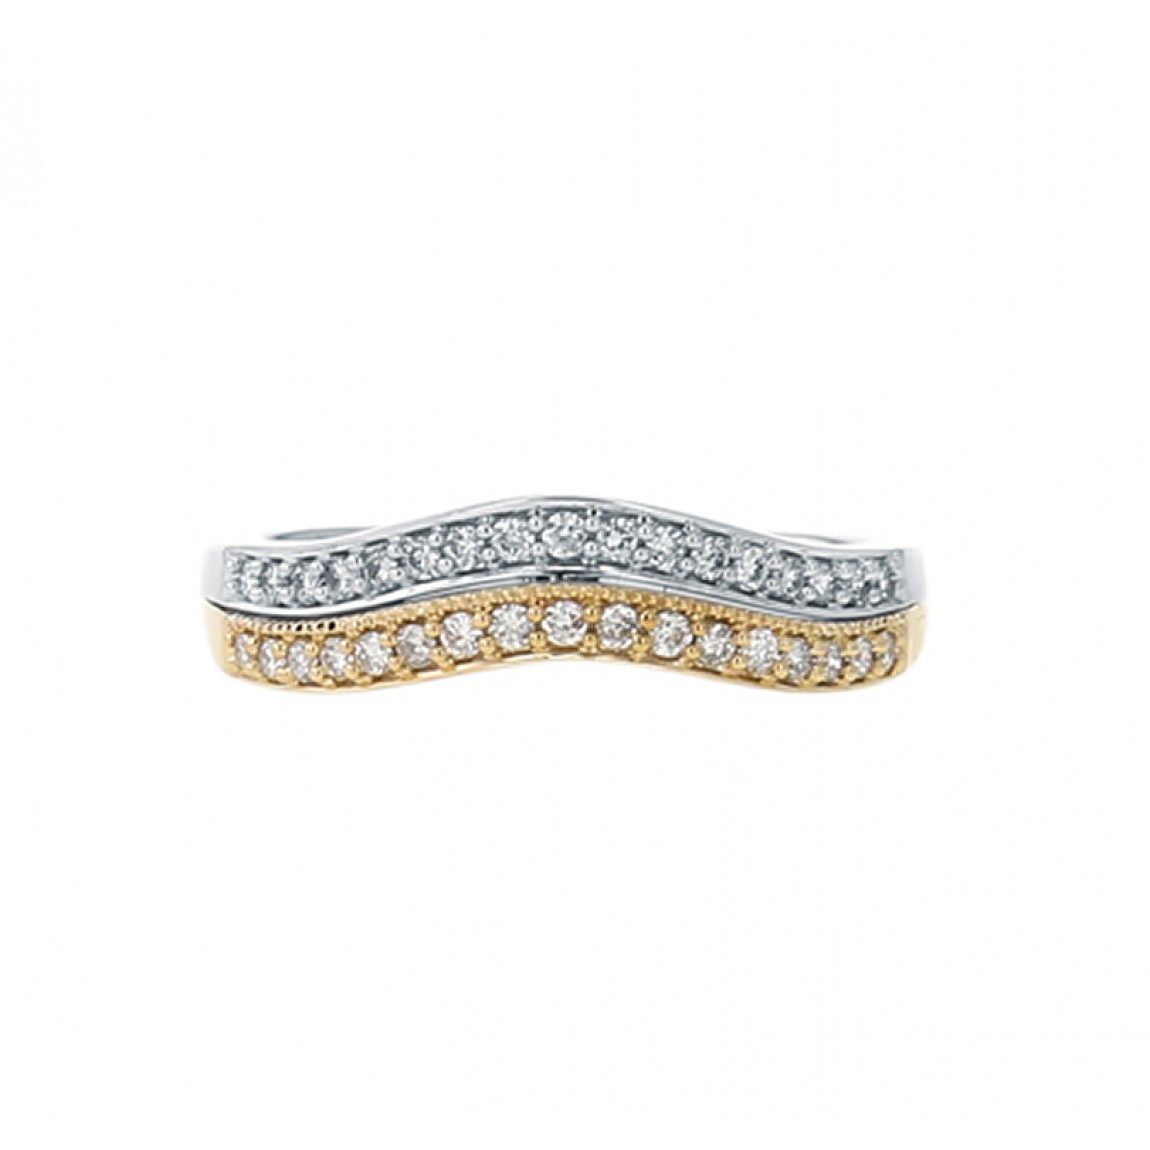 Diamond Wedding Band Ring, Two Row Curved, 14k Two Tone Gold, (View 17 of 25)